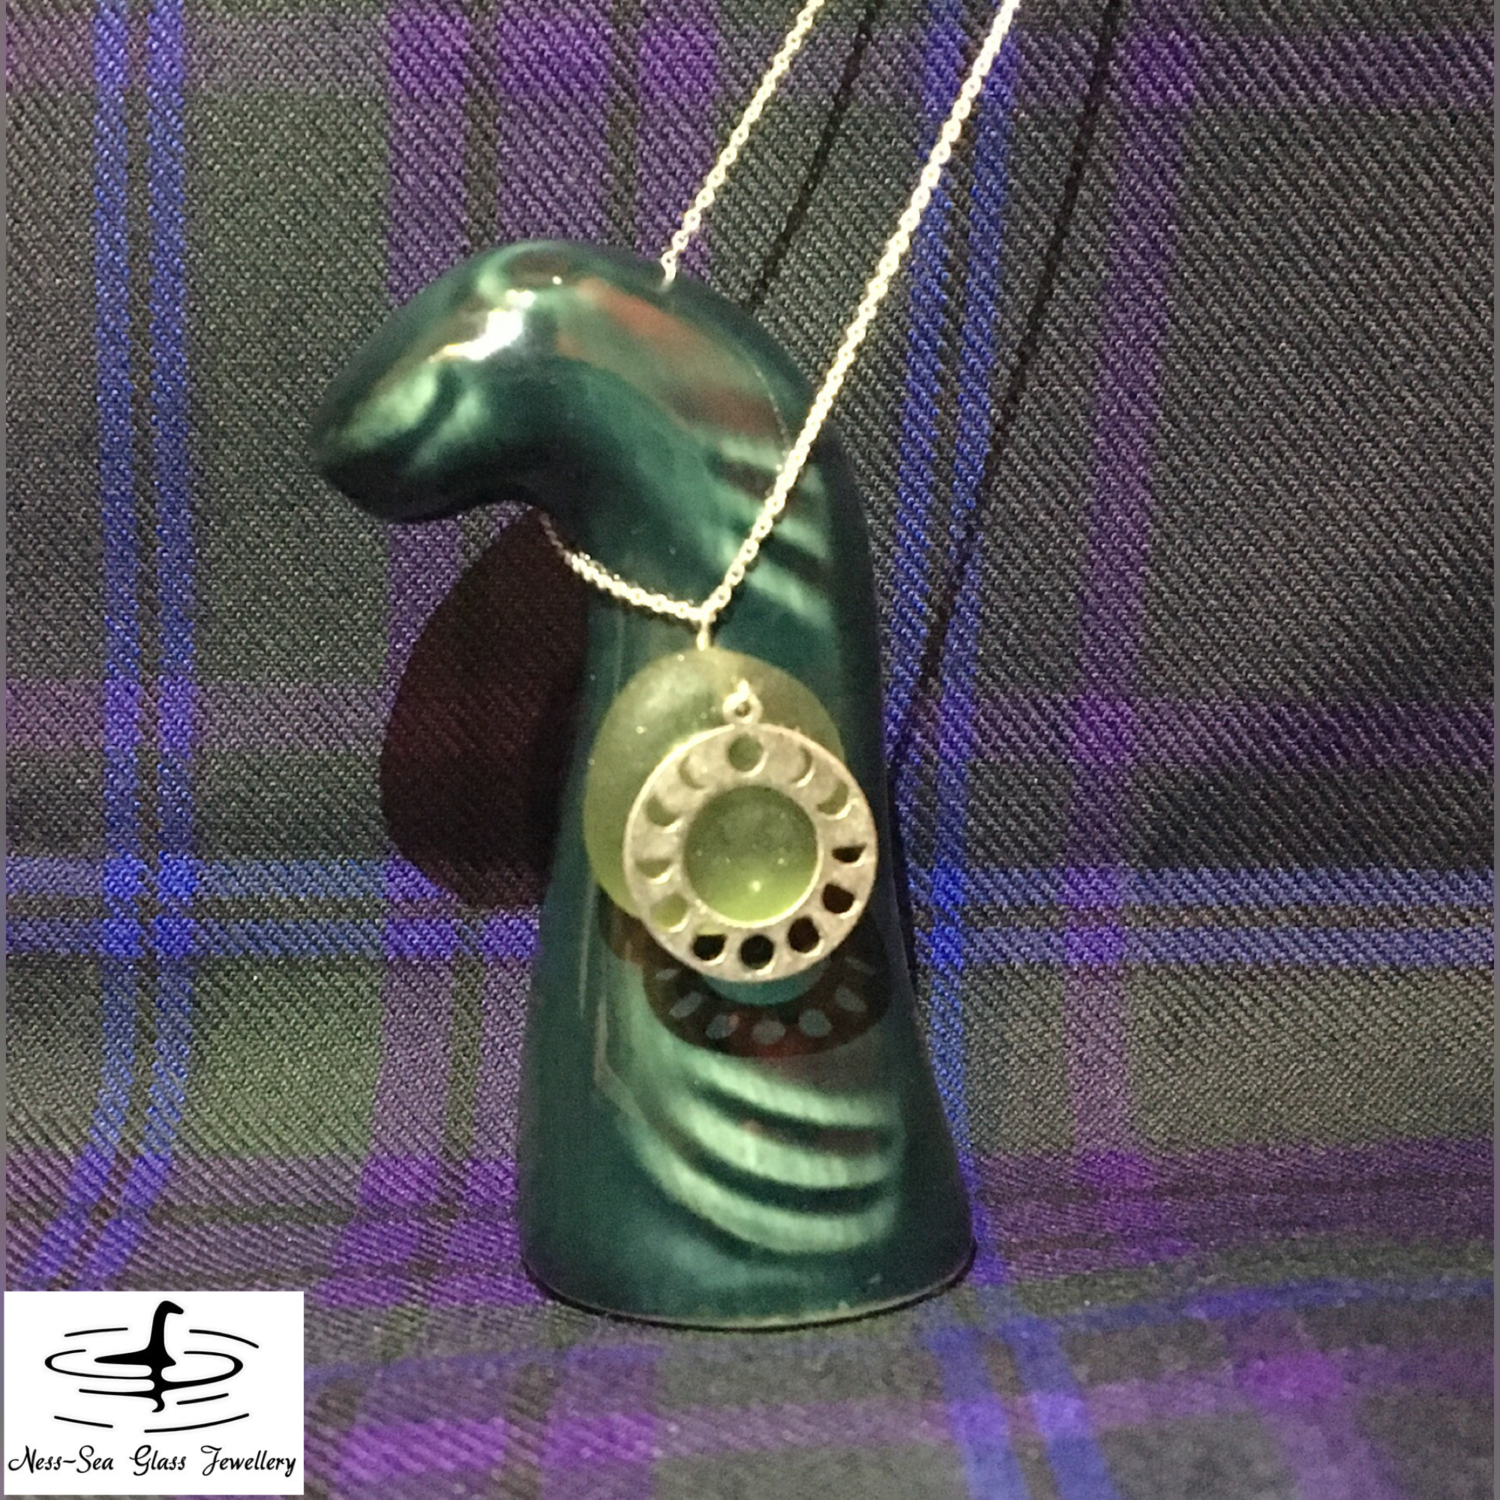 Green Loch Ness Sea Glass Necklace with Sterling Silver Luna Cycle detail and Fine Sterling Silver Chain.